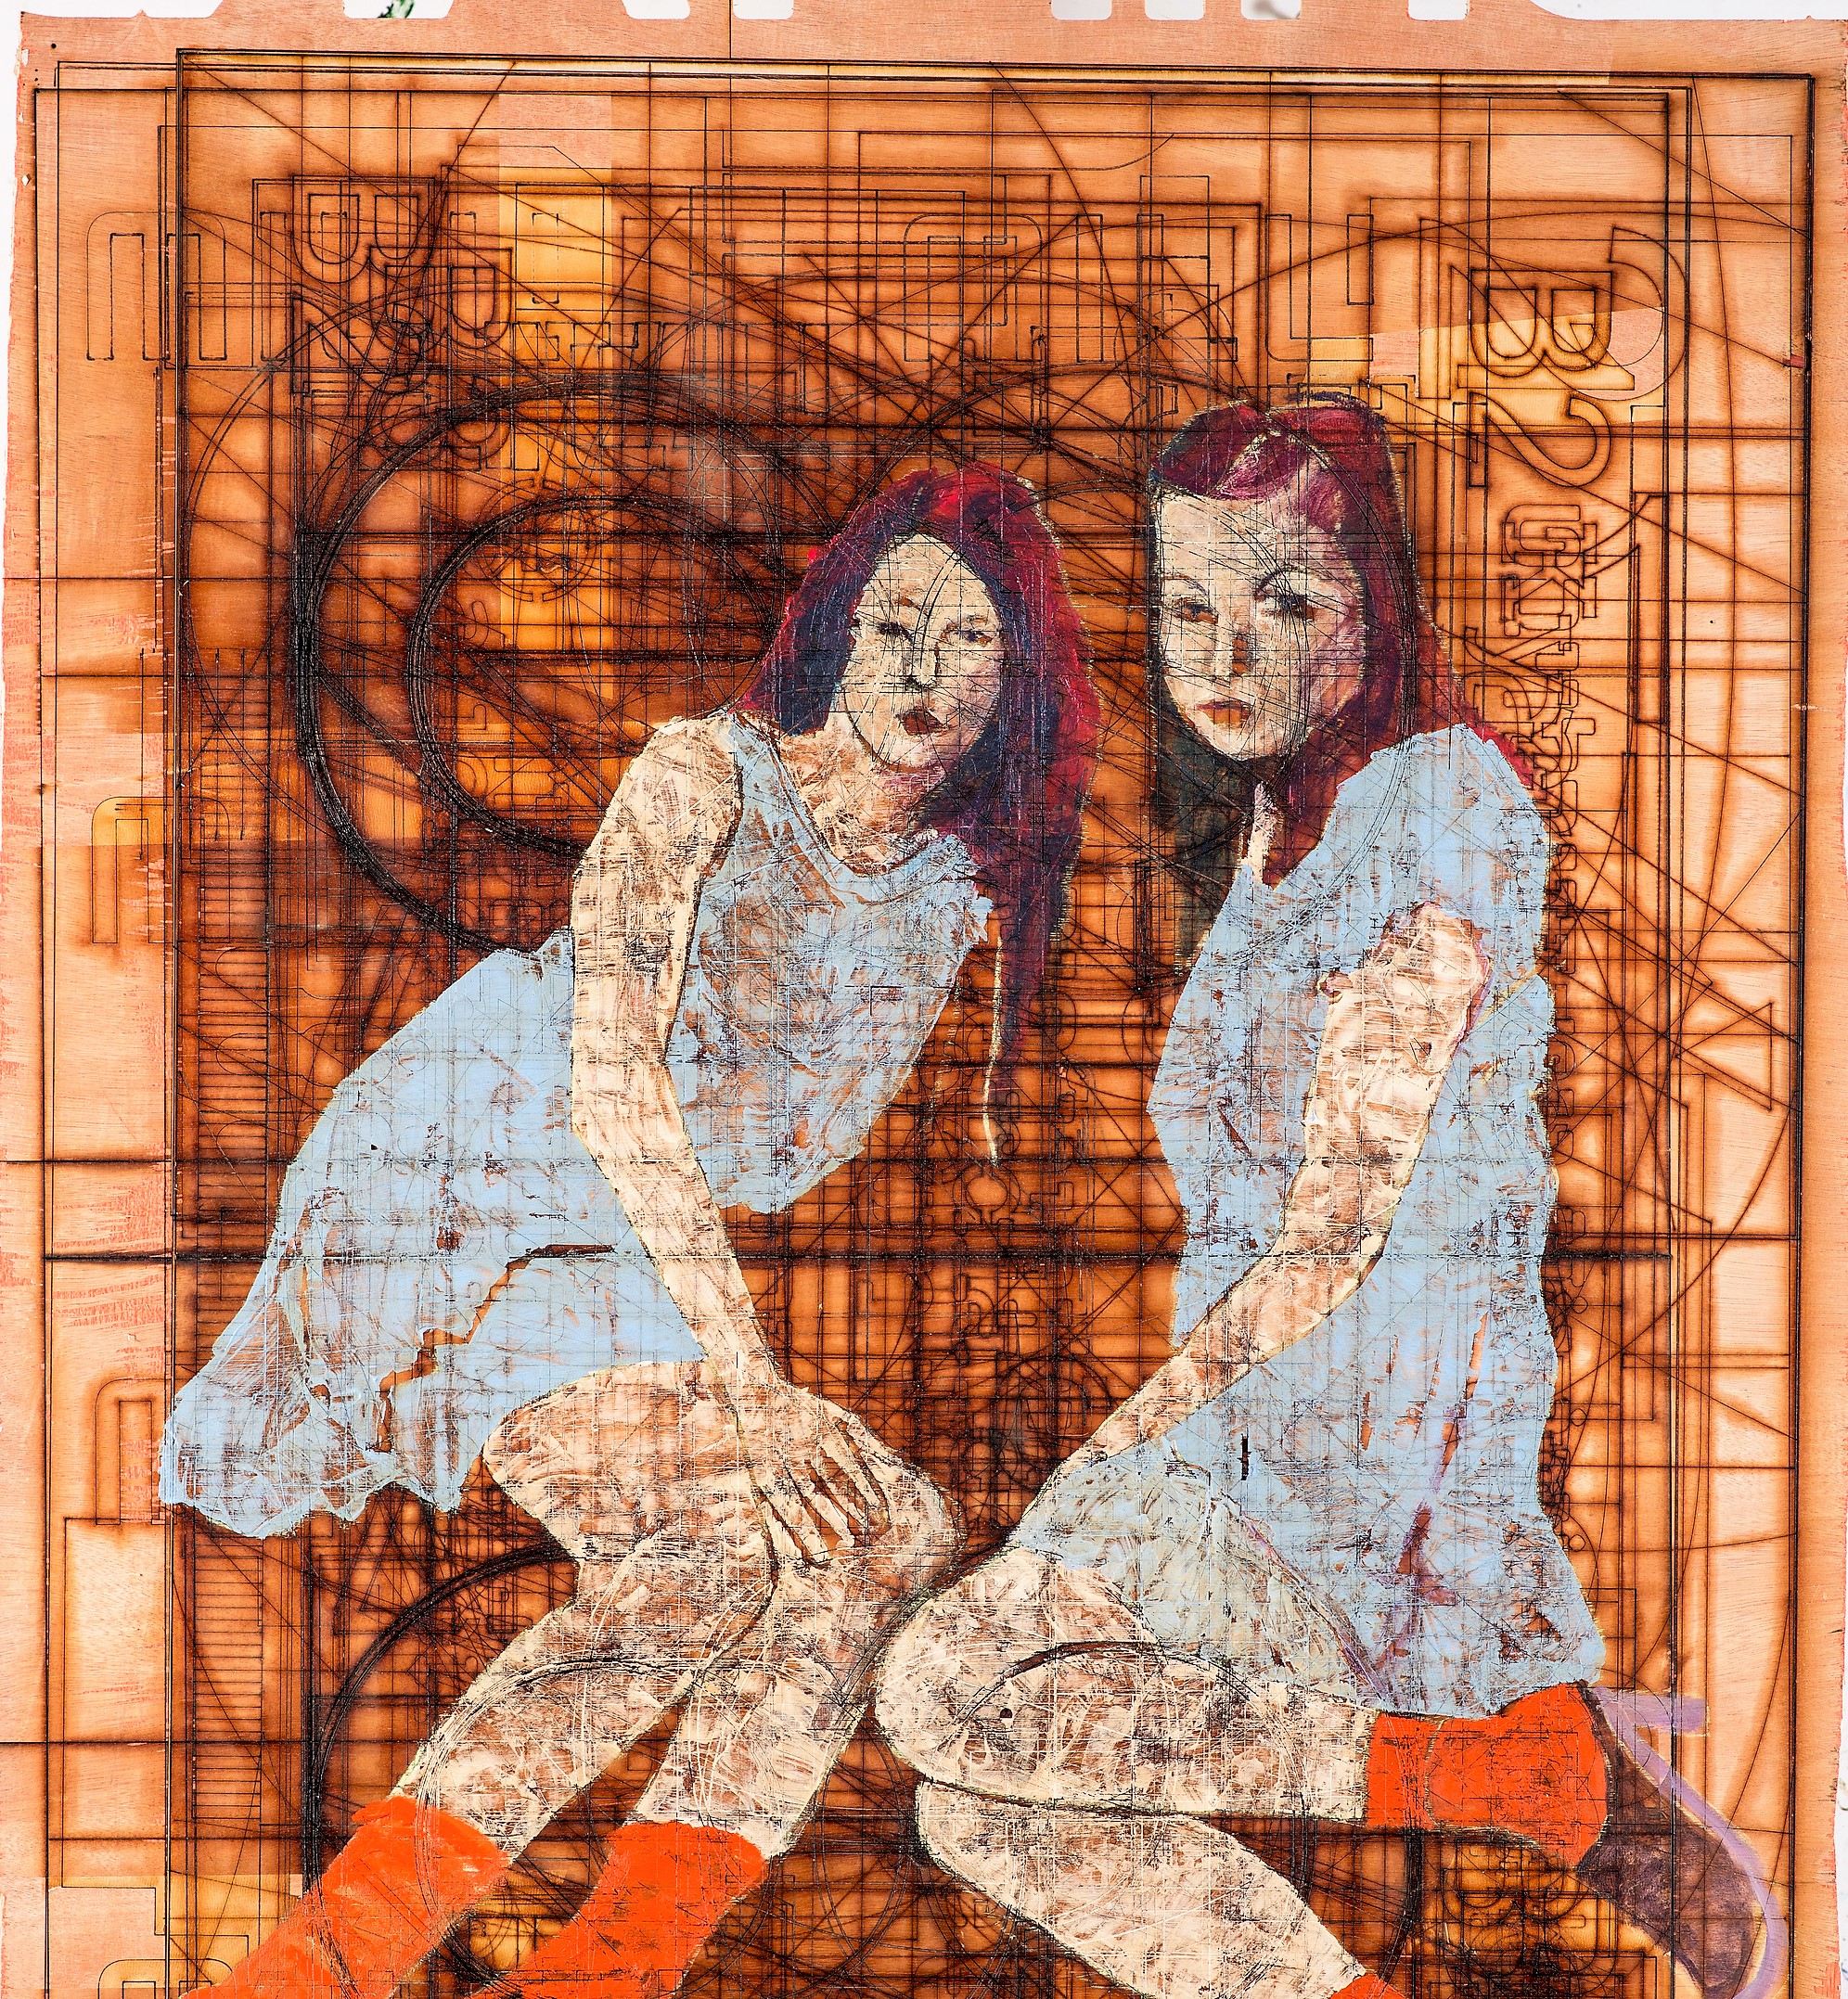 Eliaz Slonim,Pose III ,Mixed media on wood,100x80cm,2018,Unique Artwork - web